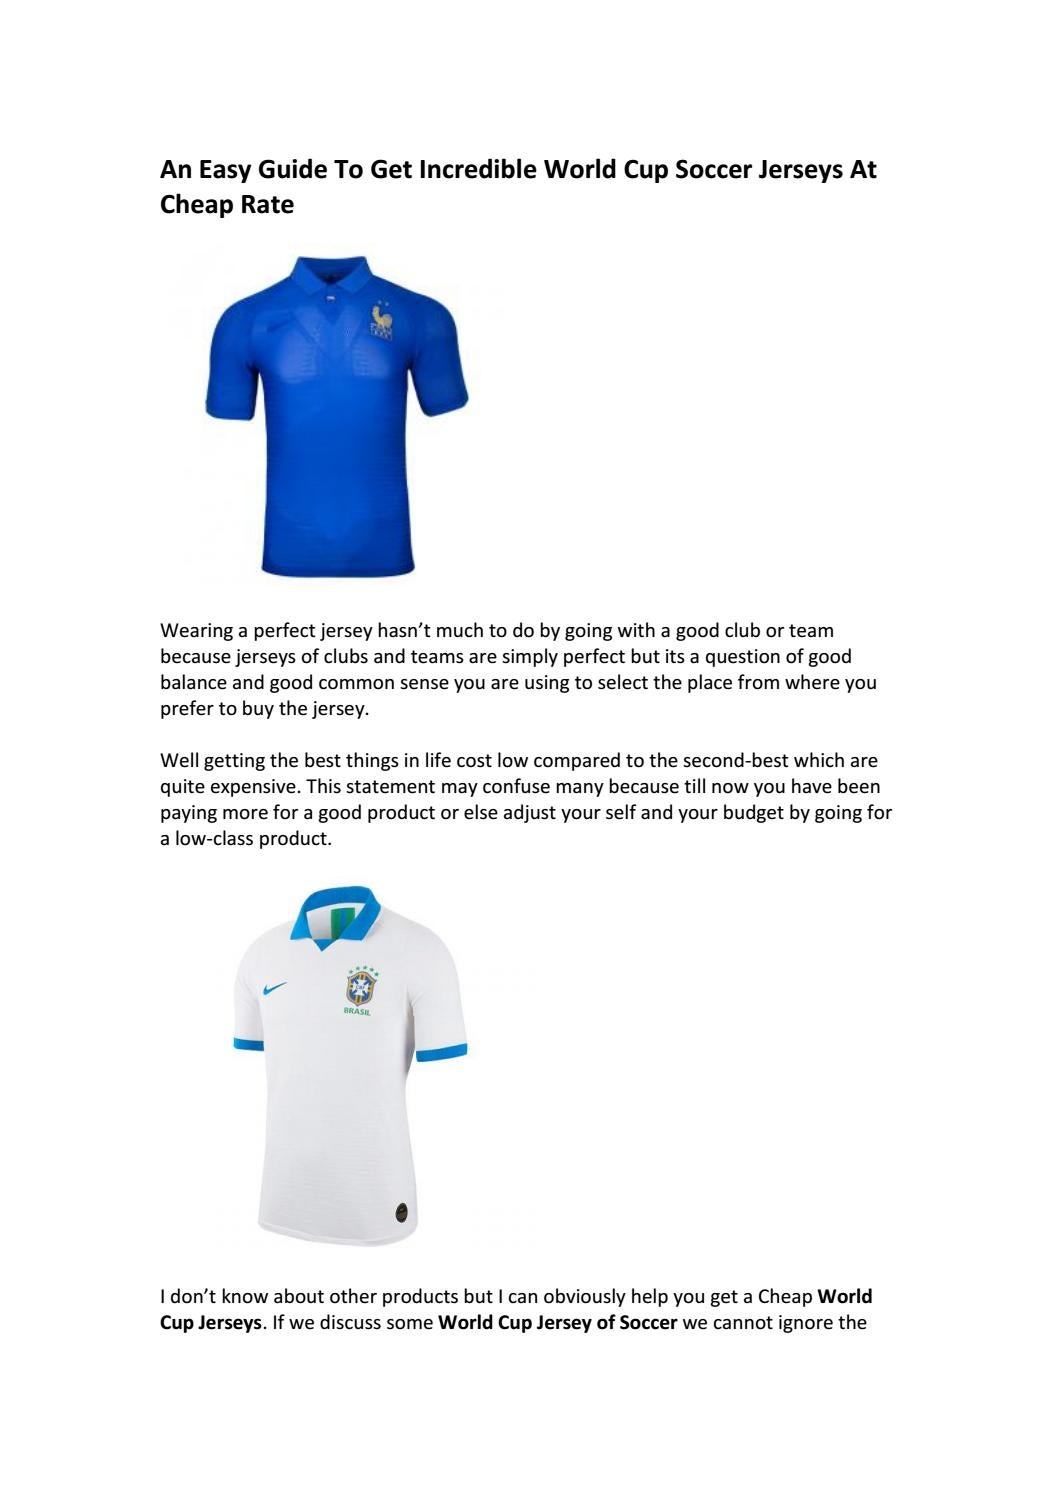 An Easy Guide To Get Incredible World Cup Soccer Jerseys At Cheap ...